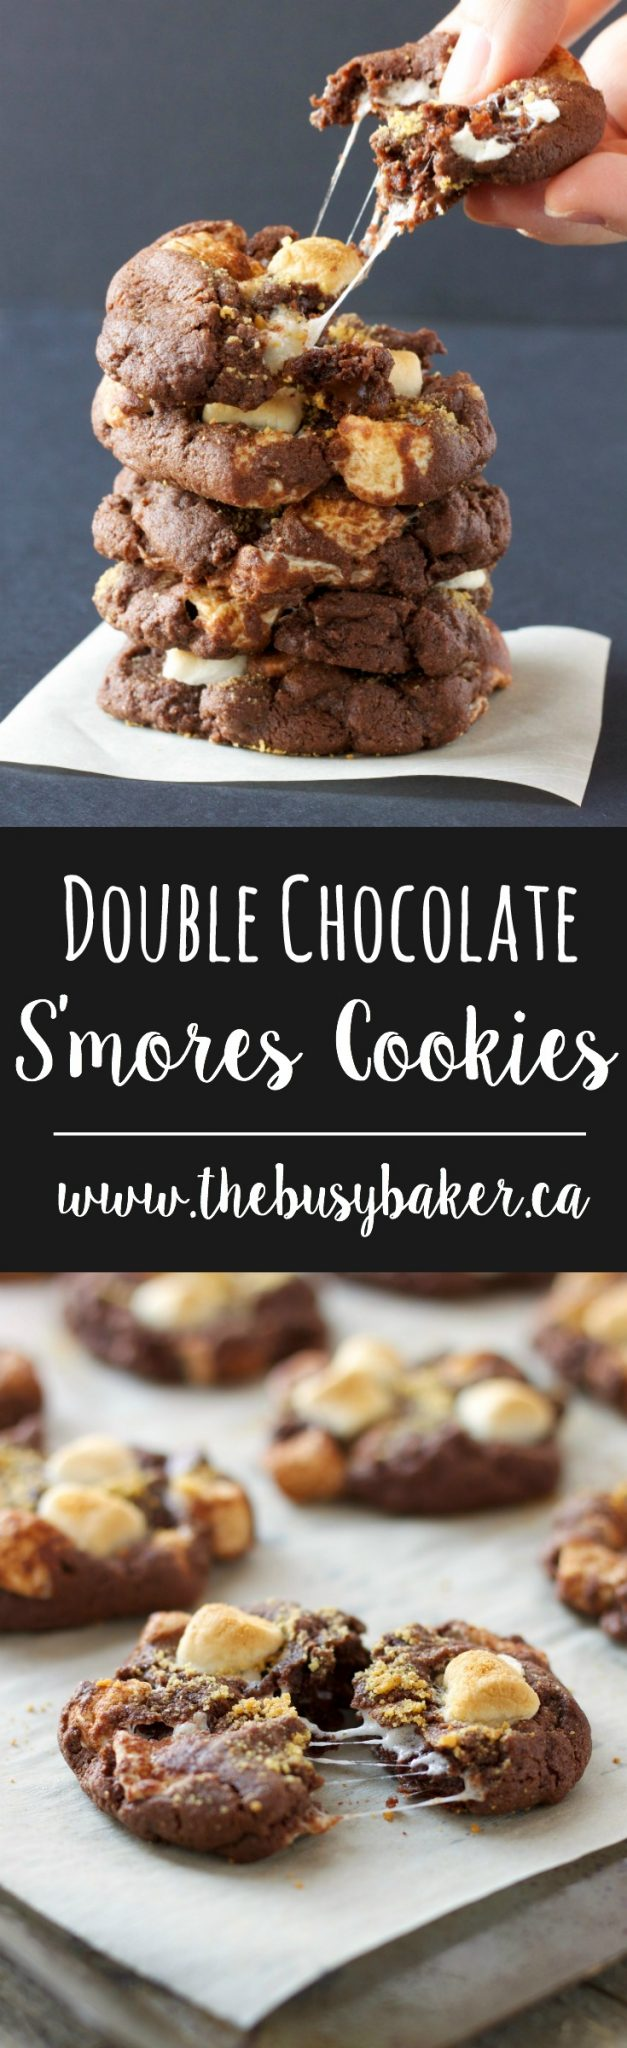 These Double Chocolate S'mores Cookies are sweet and chewy and bursting with melted chocolate and toasted marshmallows.Just everybody's favorite campfire treat! #DoubleChocolate #S'mores #Cookies #Campfire via @busybakerblog